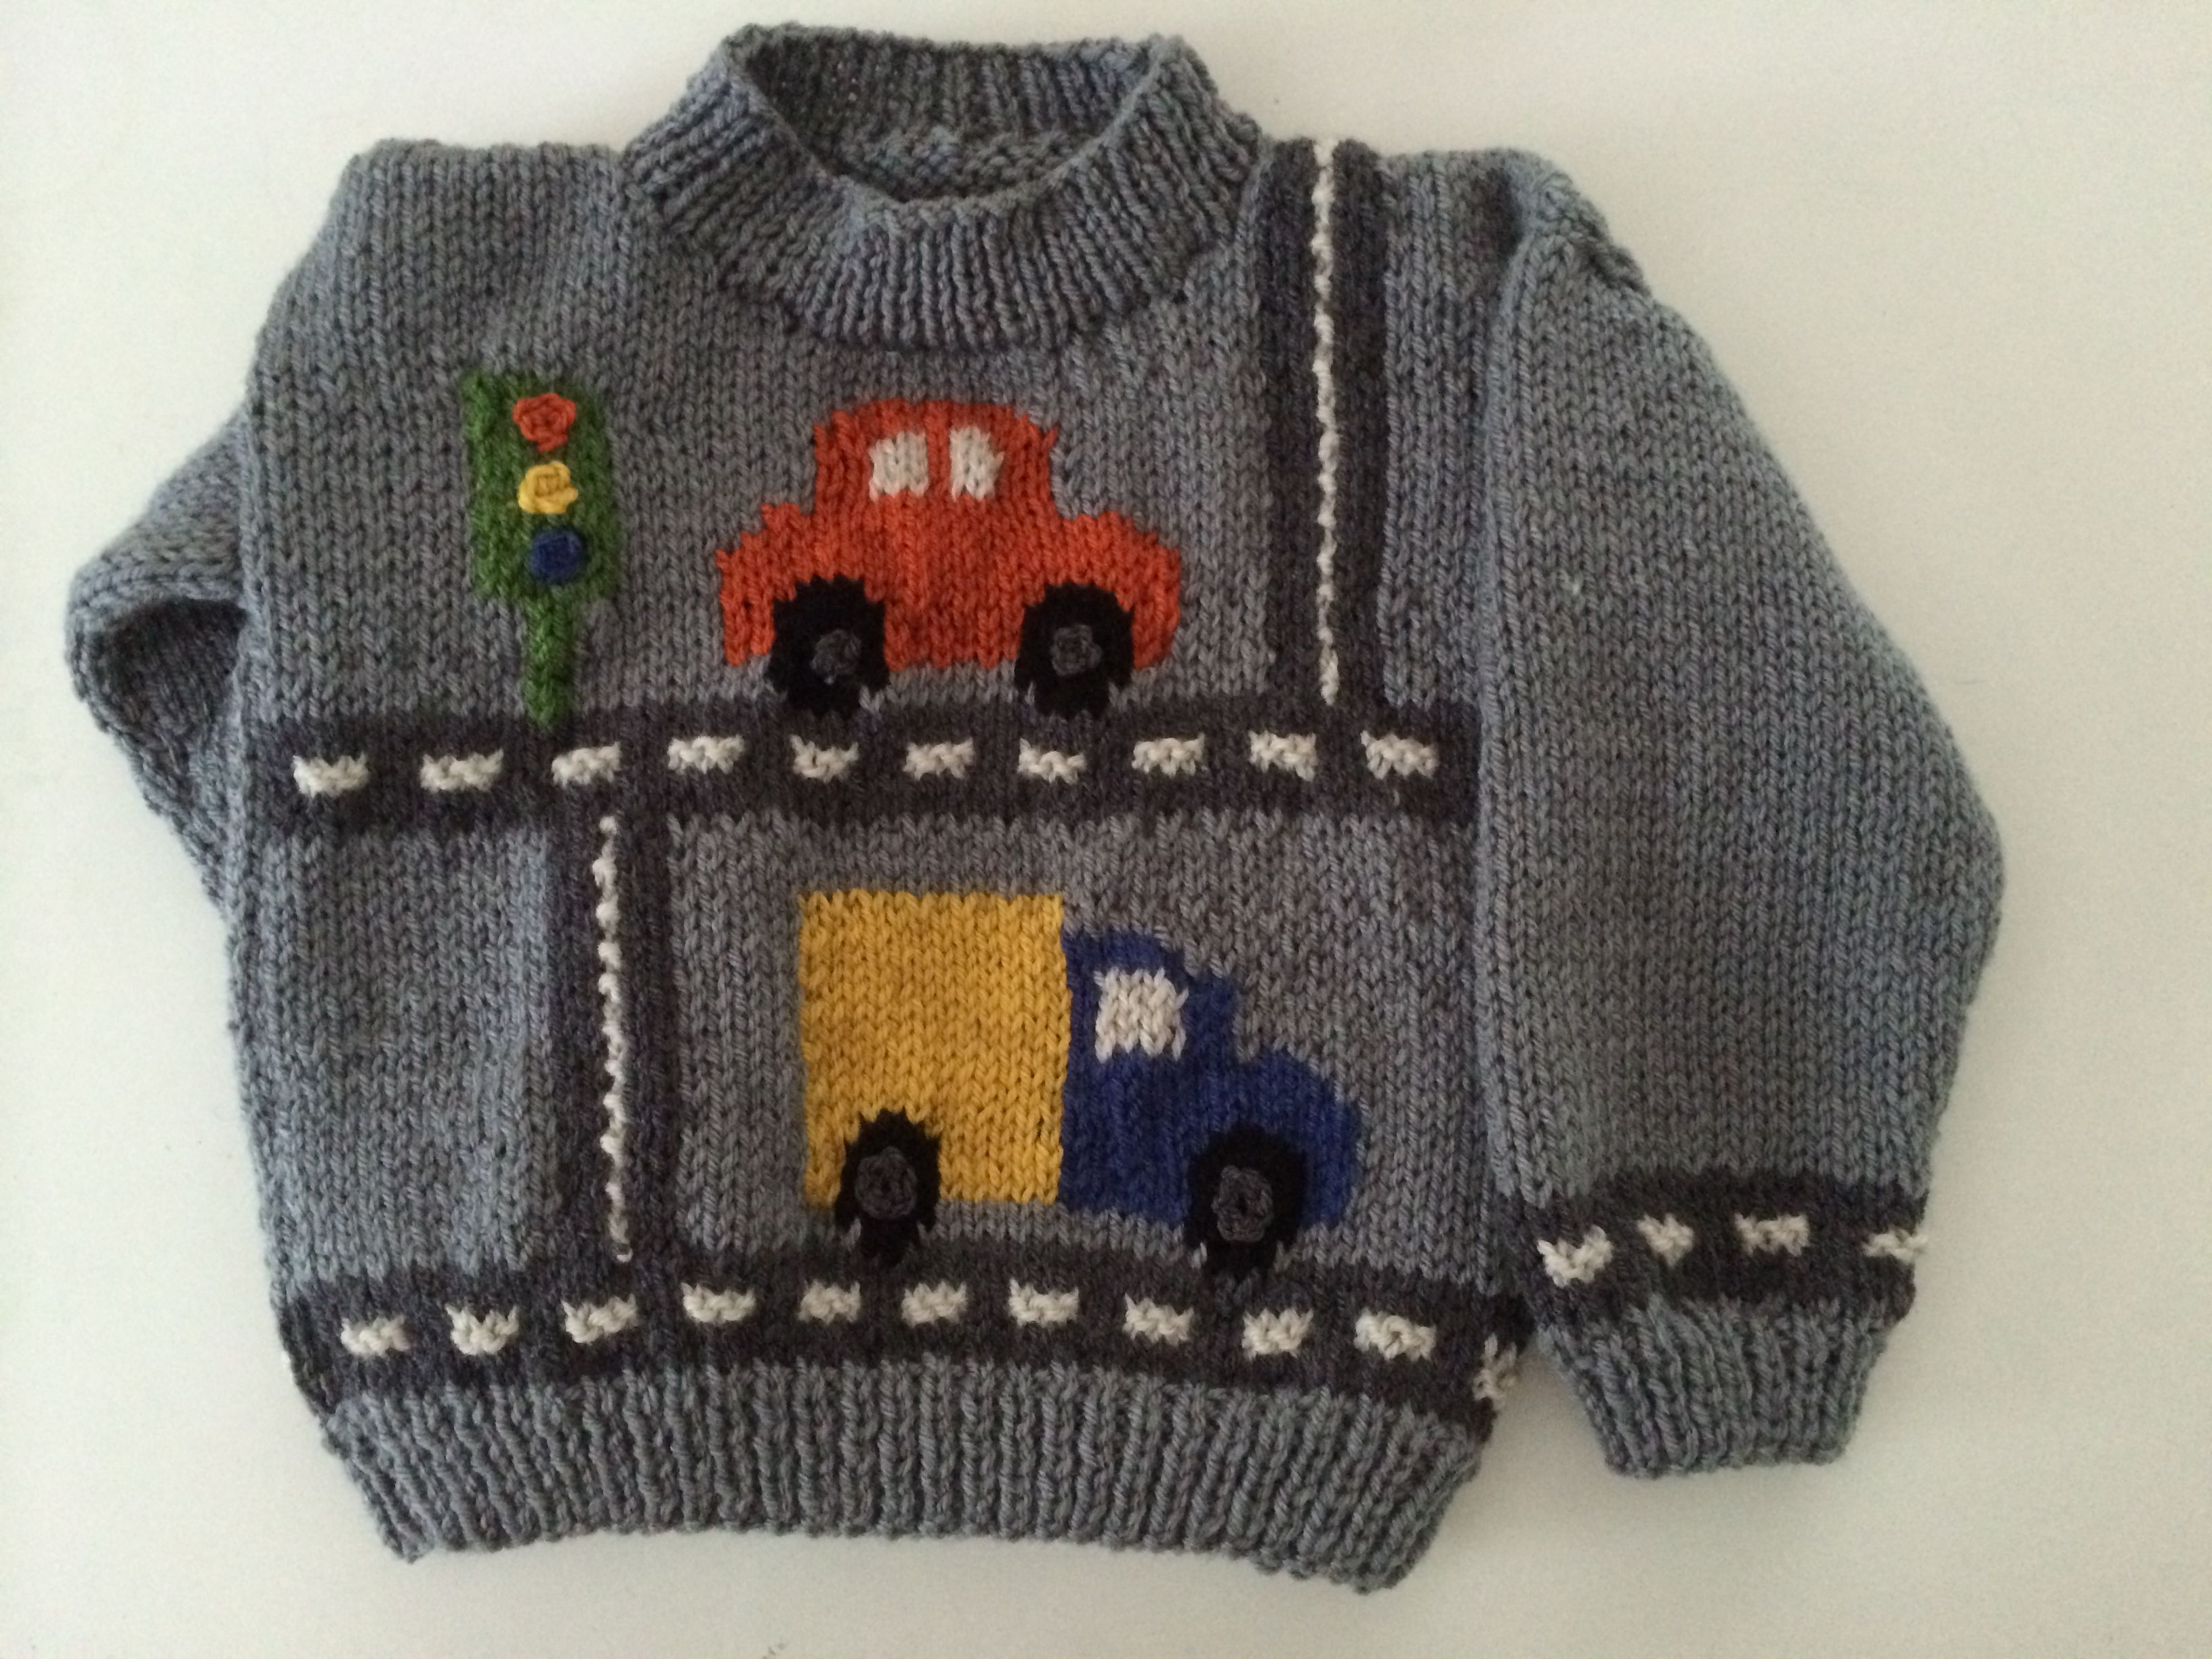 Car and truck sweater i knitted for 2 nephews knitted kids car and truck sweater i knitted for 2 nephews bankloansurffo Images